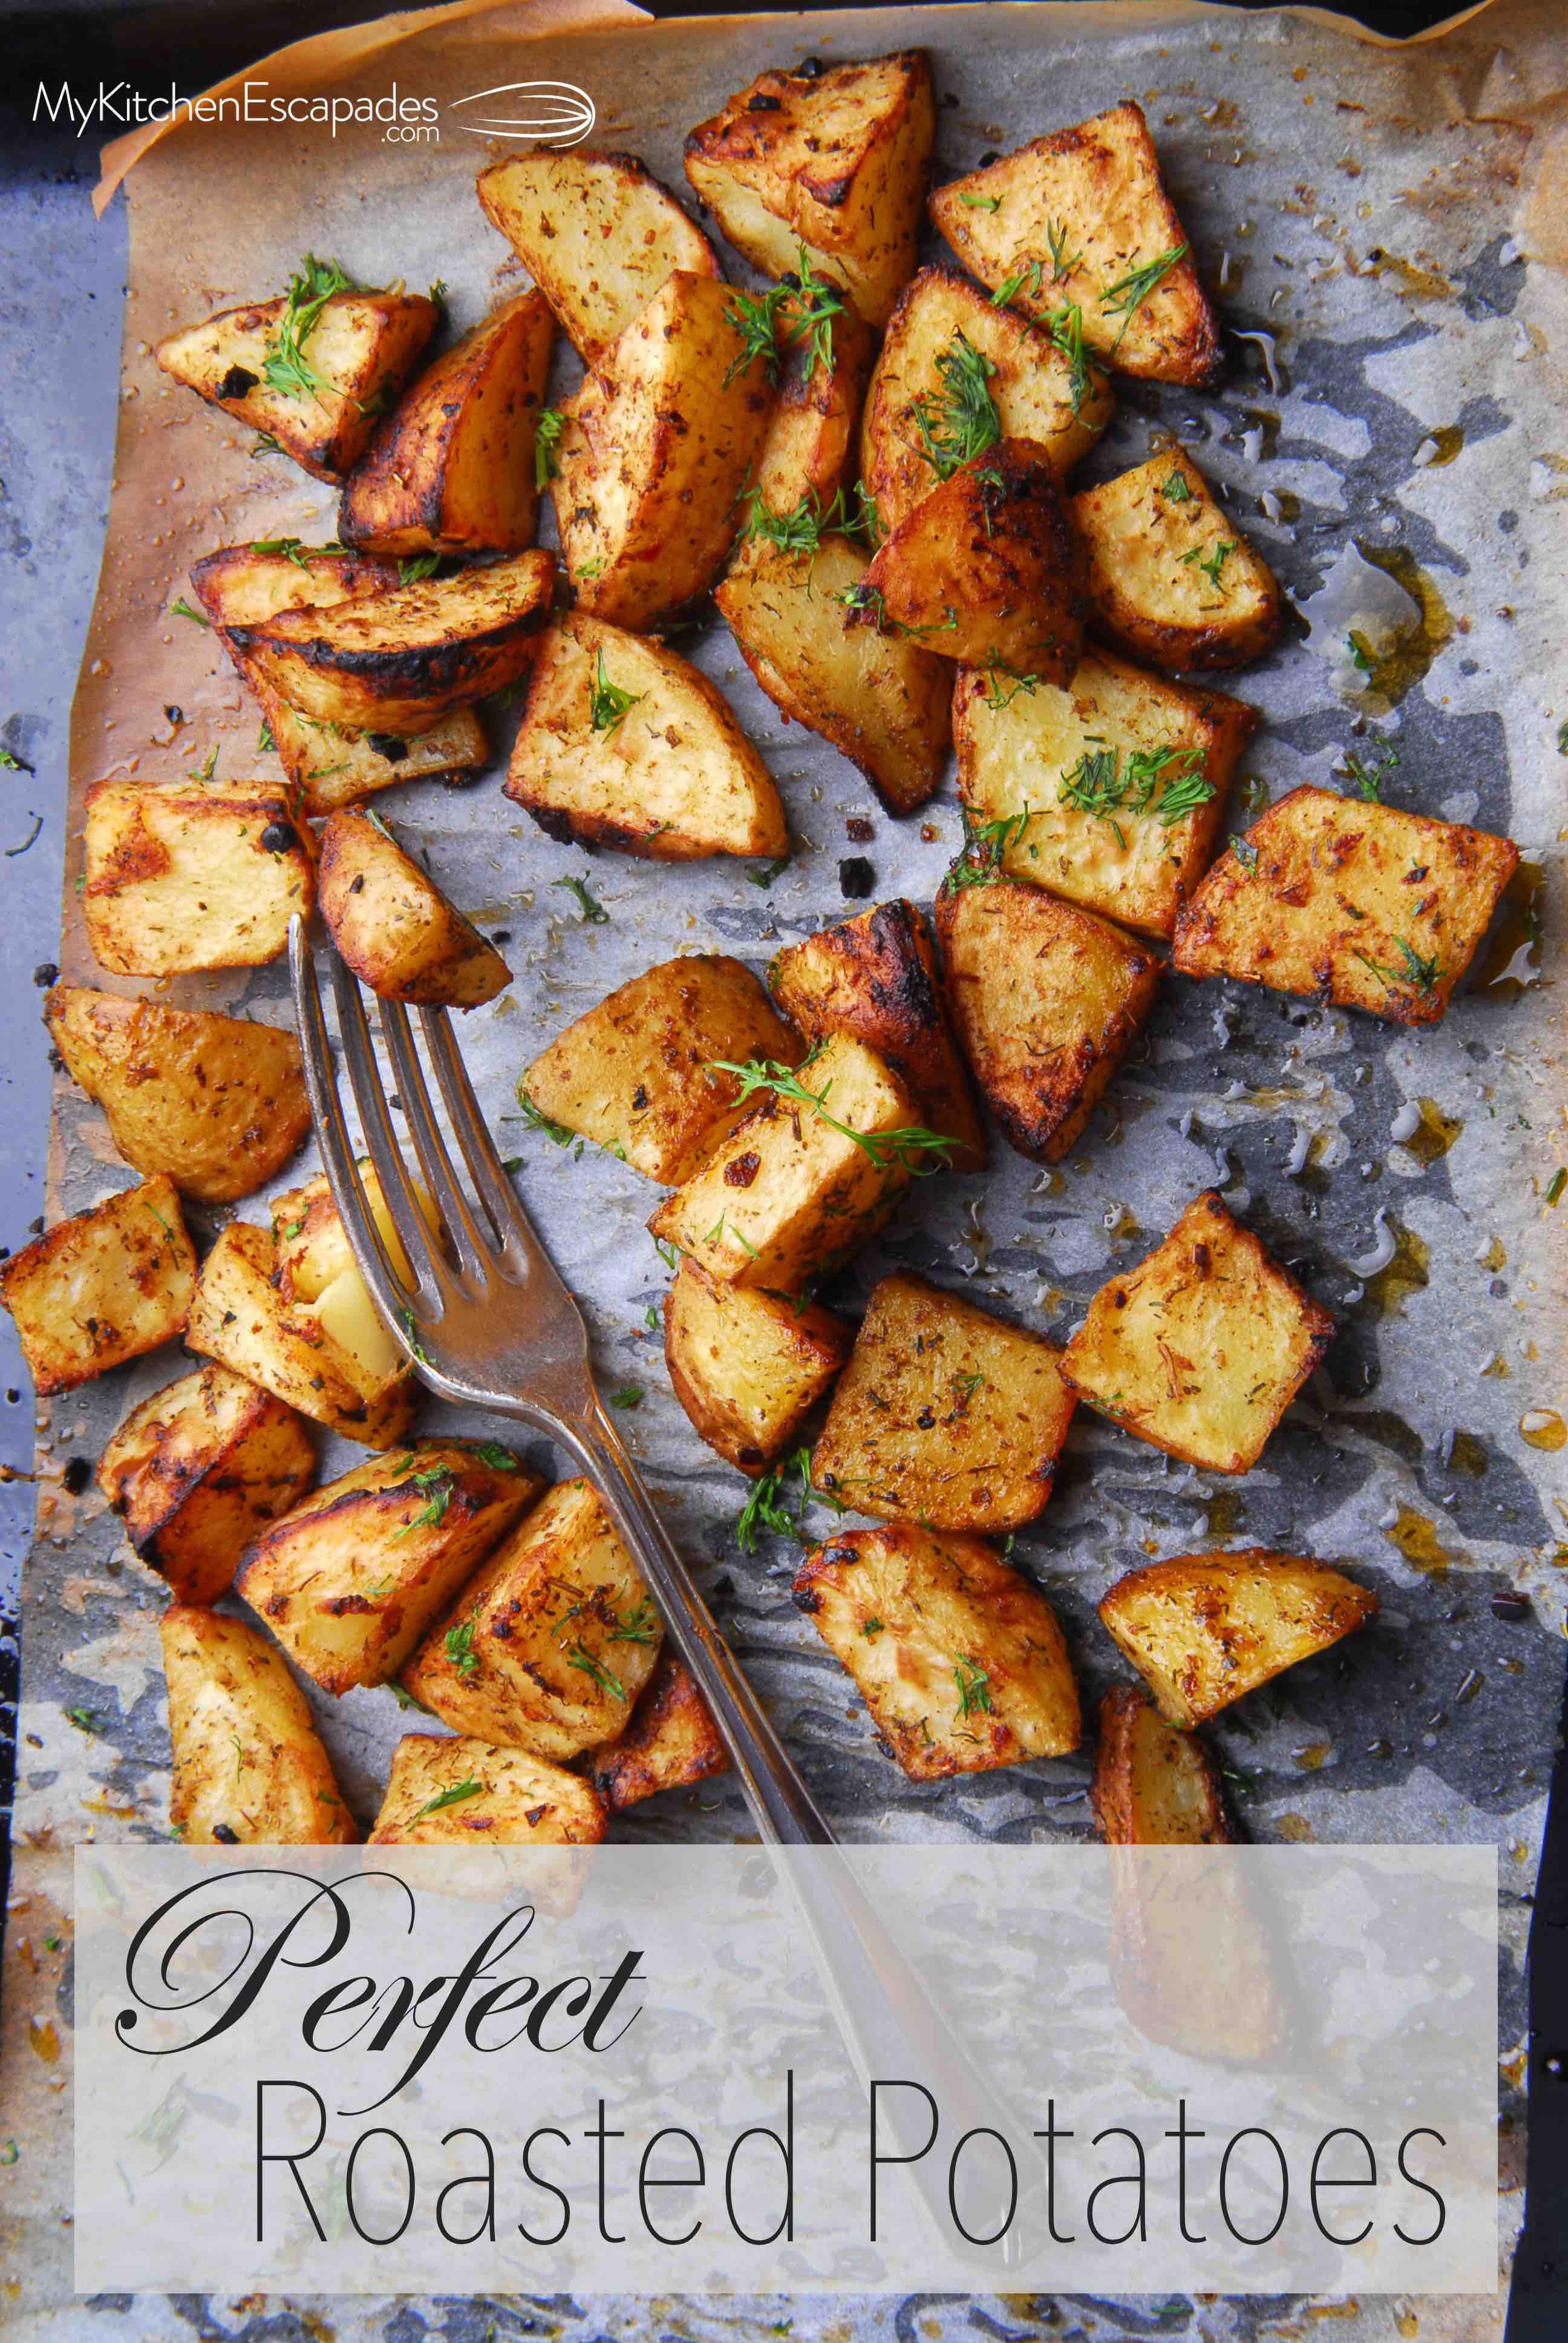 Perfect Oven Roasted Potatoes